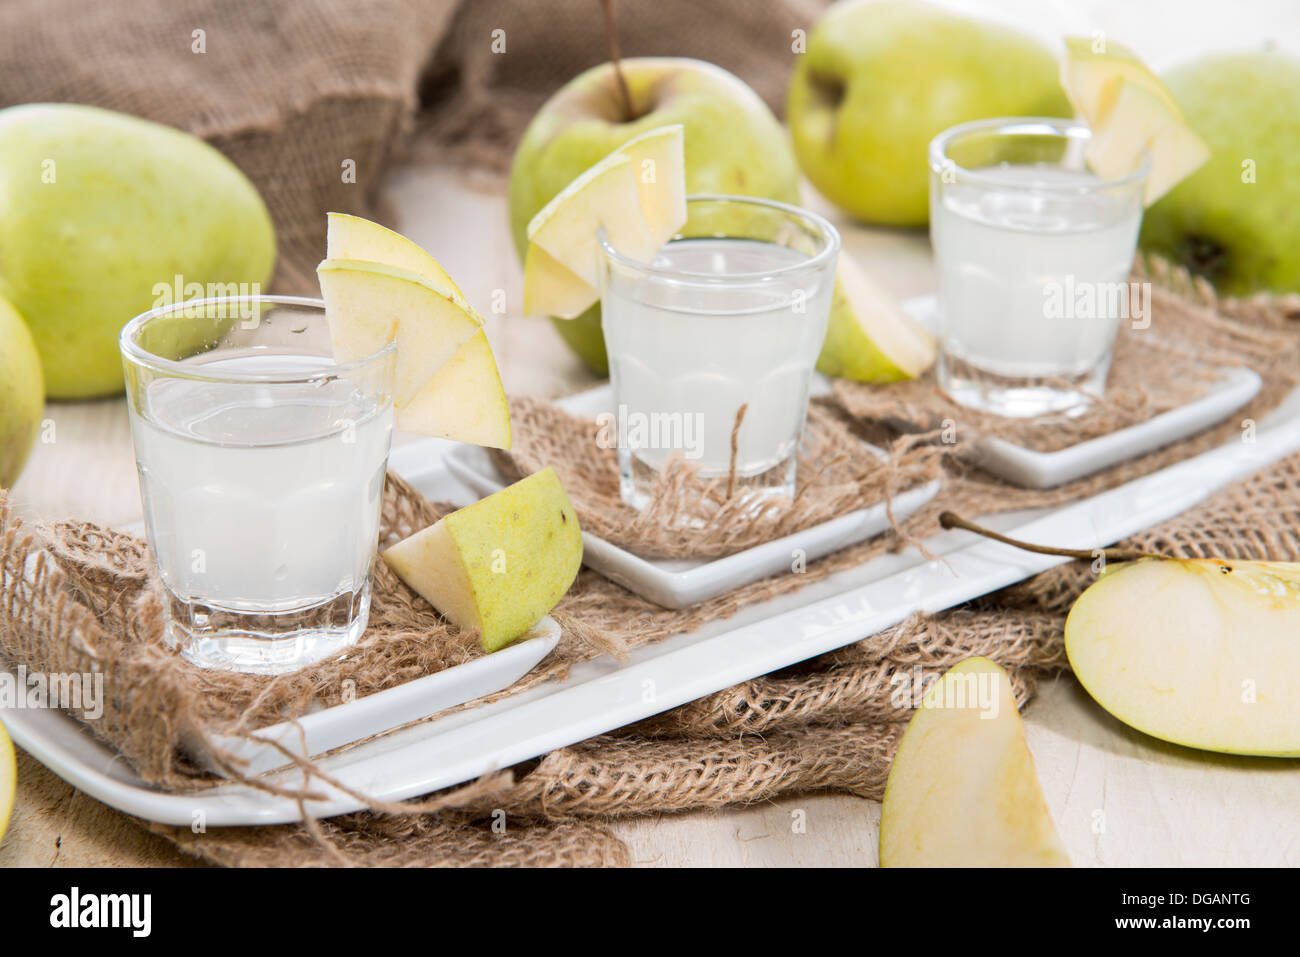 Shots of Apple Liqueur on vintage background - Stock Image